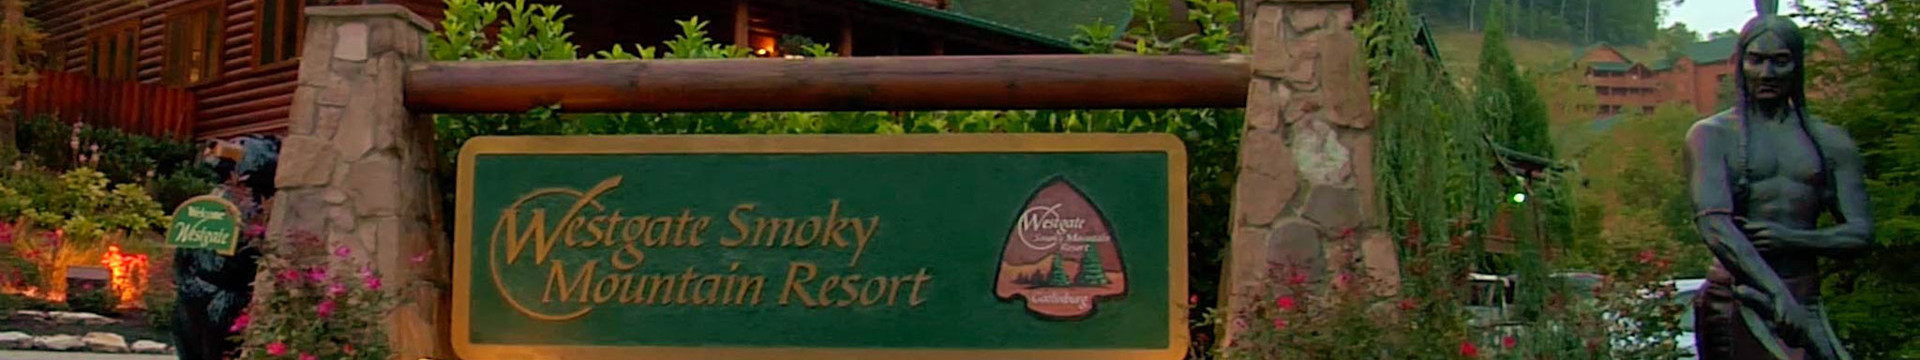 Gatlinburg Resort near the Smoky Mountains | Westgate Smoky Mountain Resort & Spa